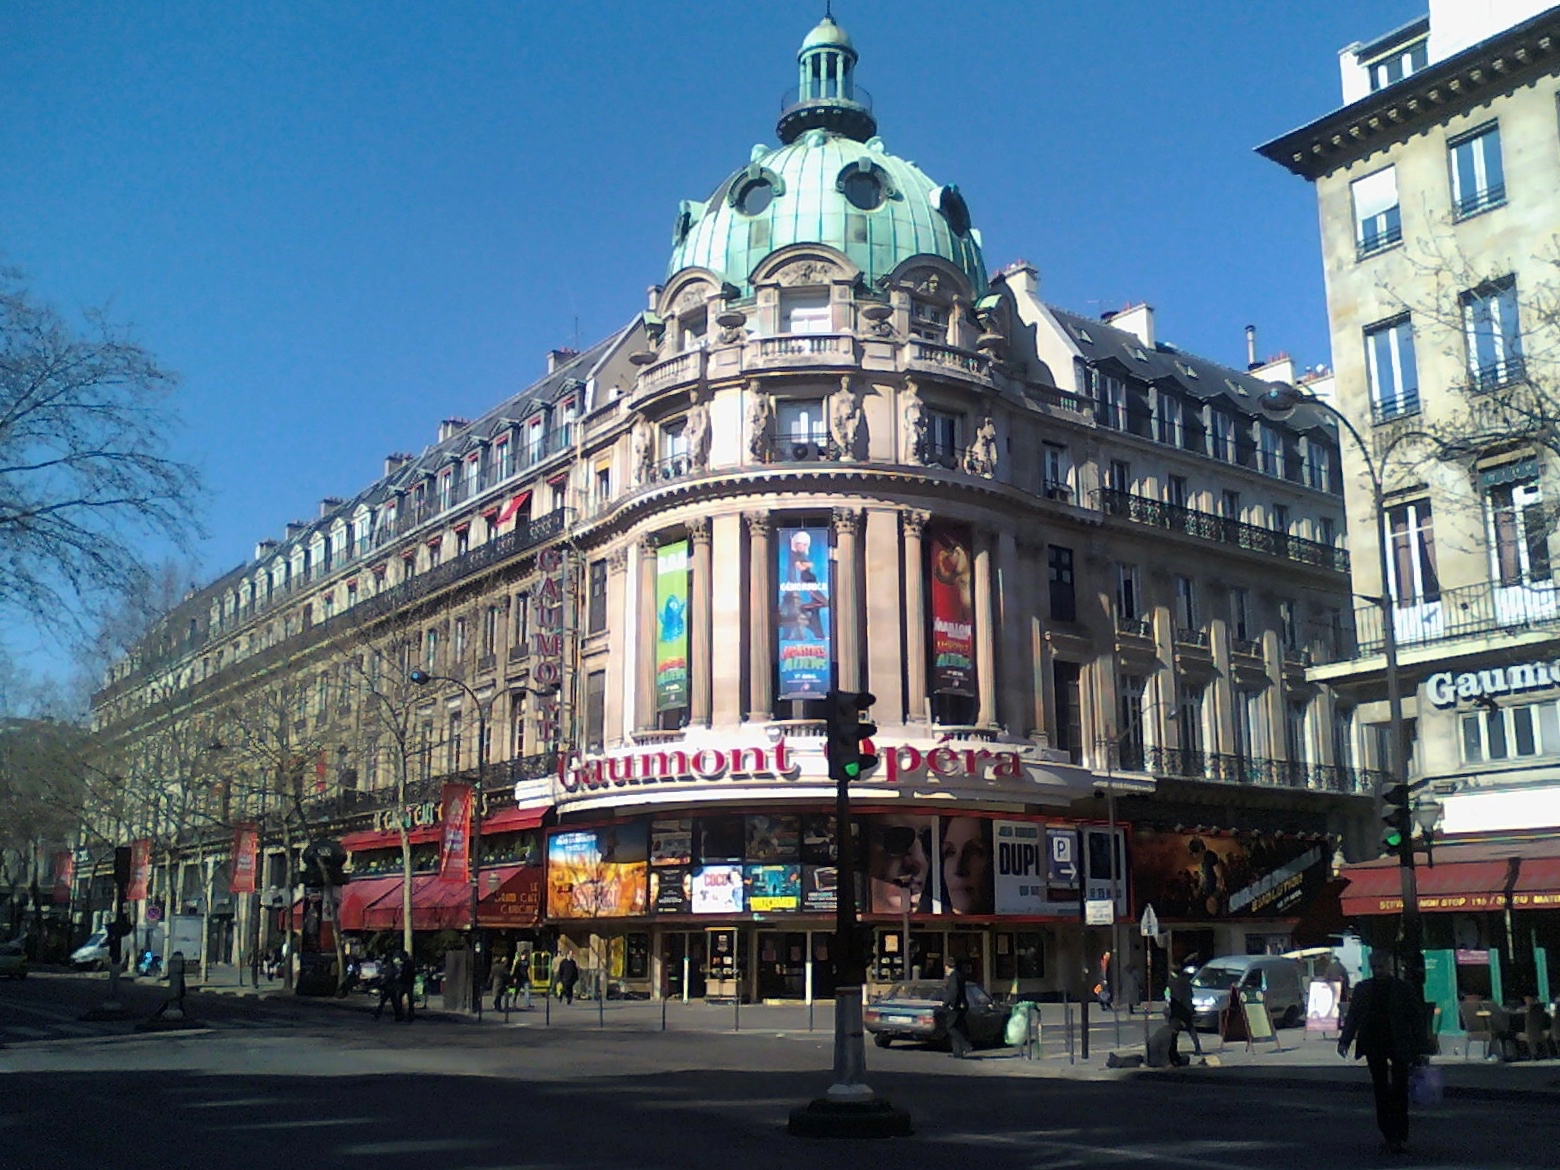 http://upload.wikimedia.org/wikipedia/commons/3/36/Cin%C3%A9_Gaumont_Op%C3%A9ra.jpg